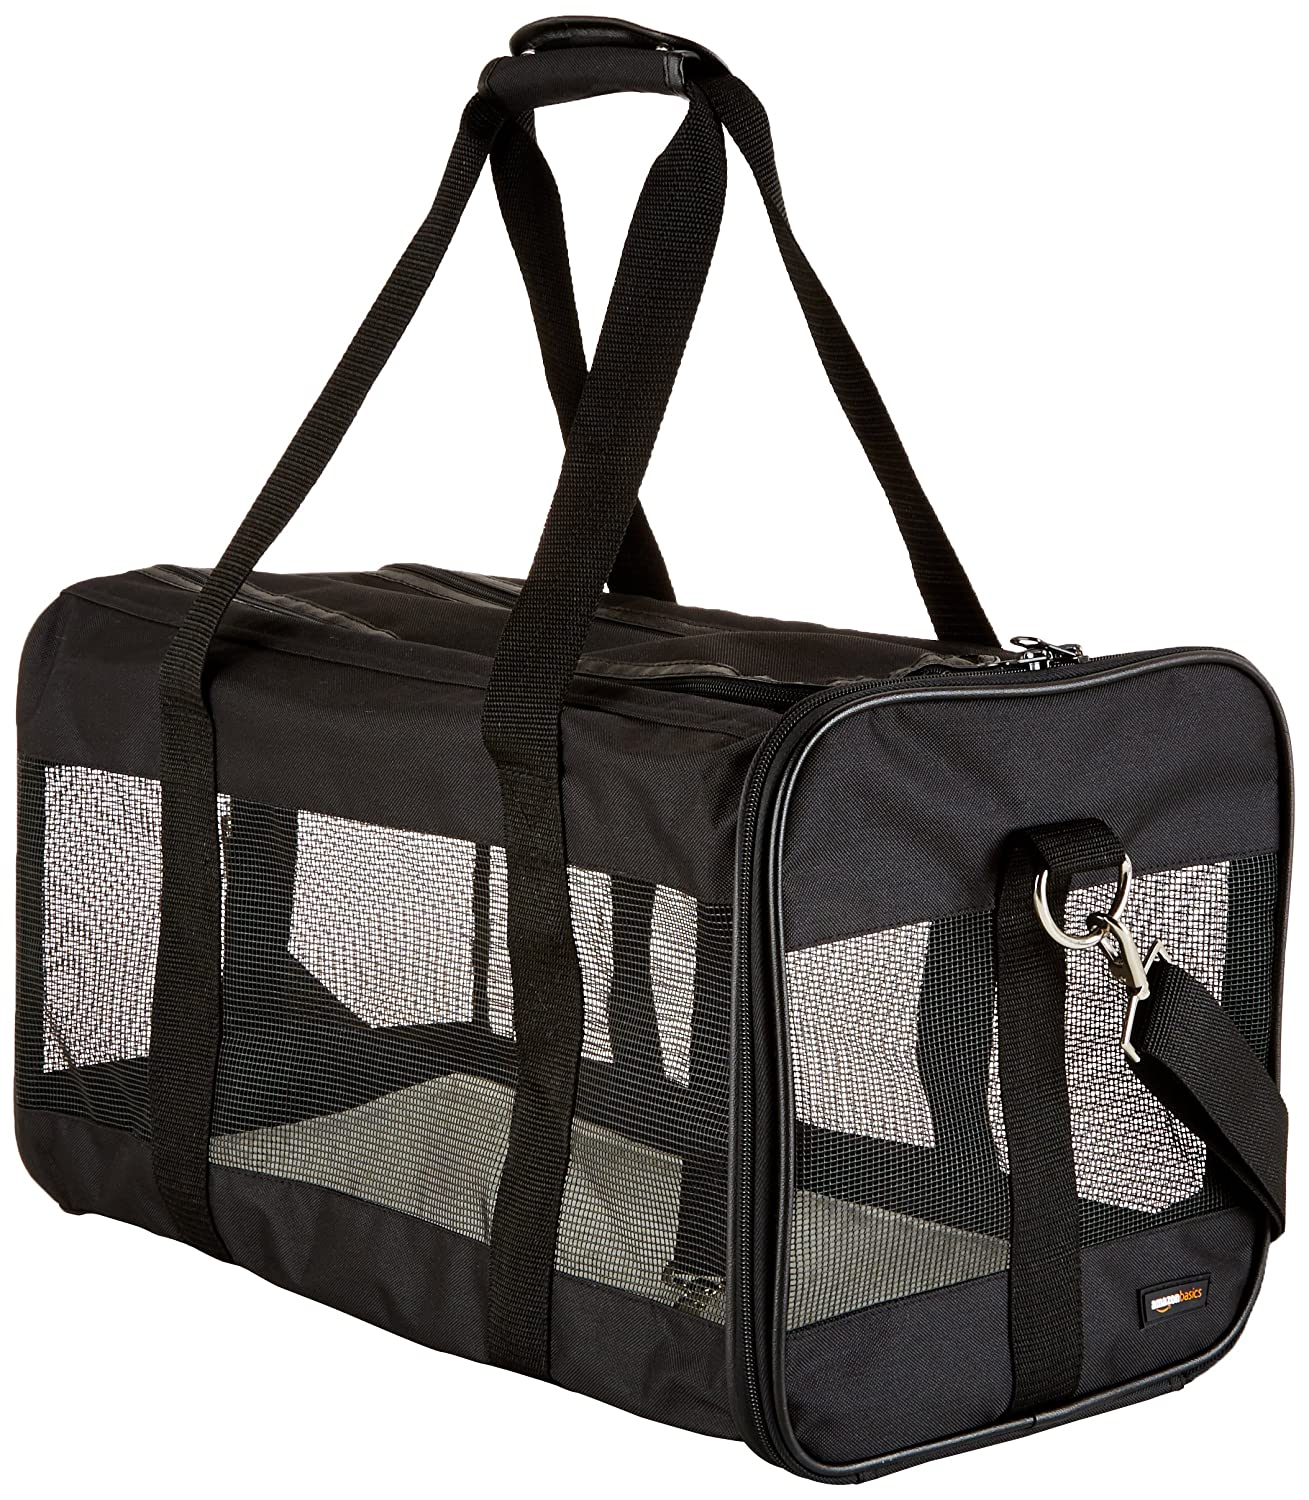 Top 10 Best Soft Sided Cat Carriers